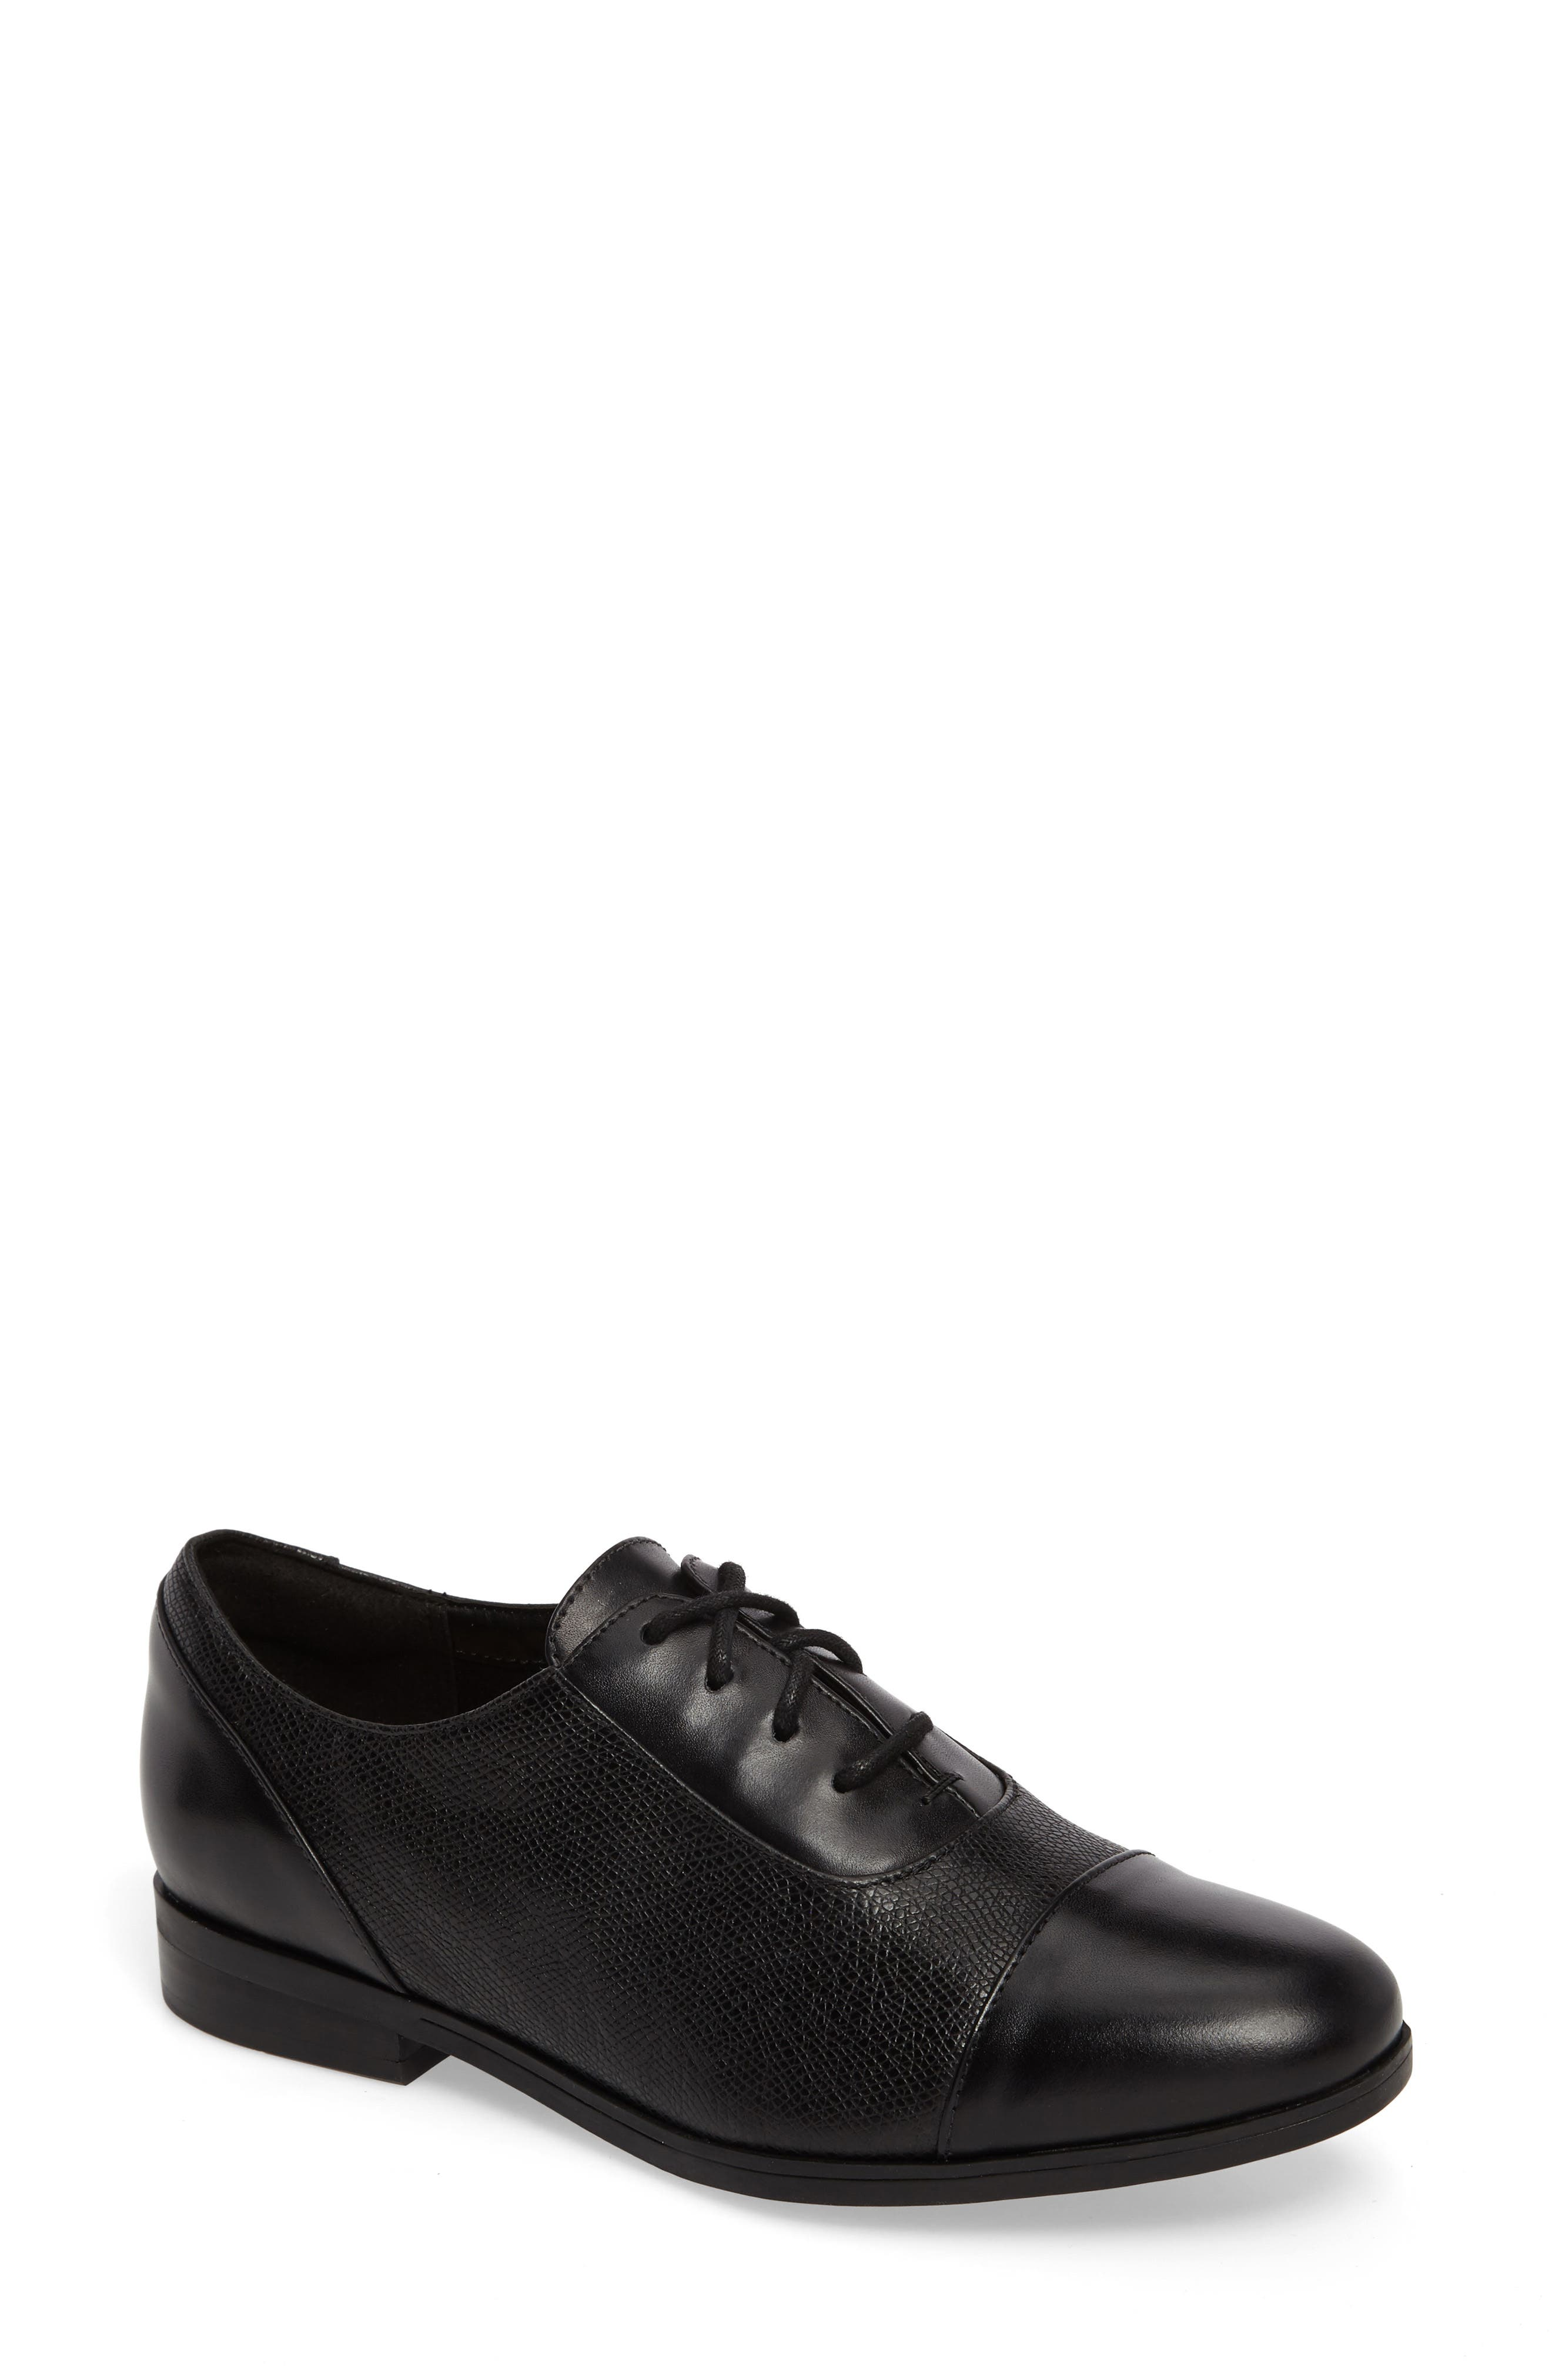 Tilmont Ivy Oxford,                             Main thumbnail 1, color,                             BLACK LEATHER